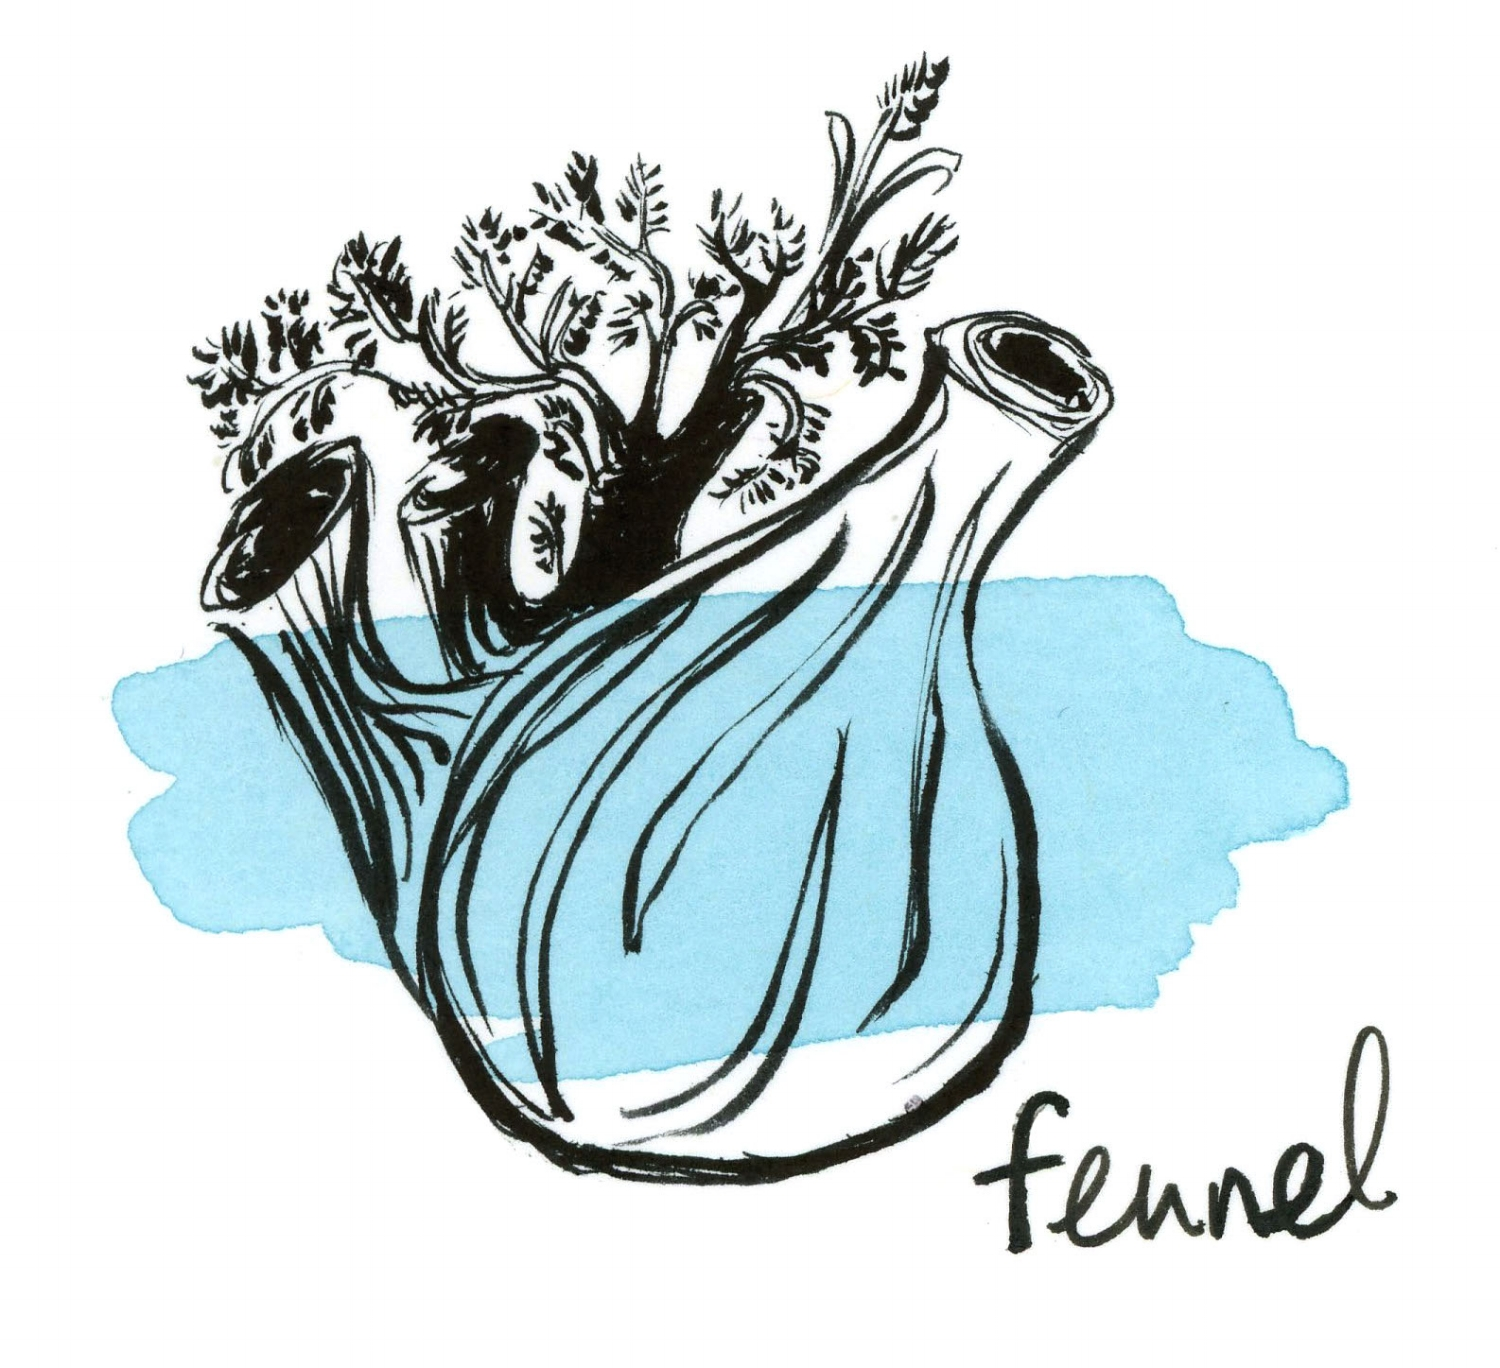 Winter_Salad_of_Fennel.jpg